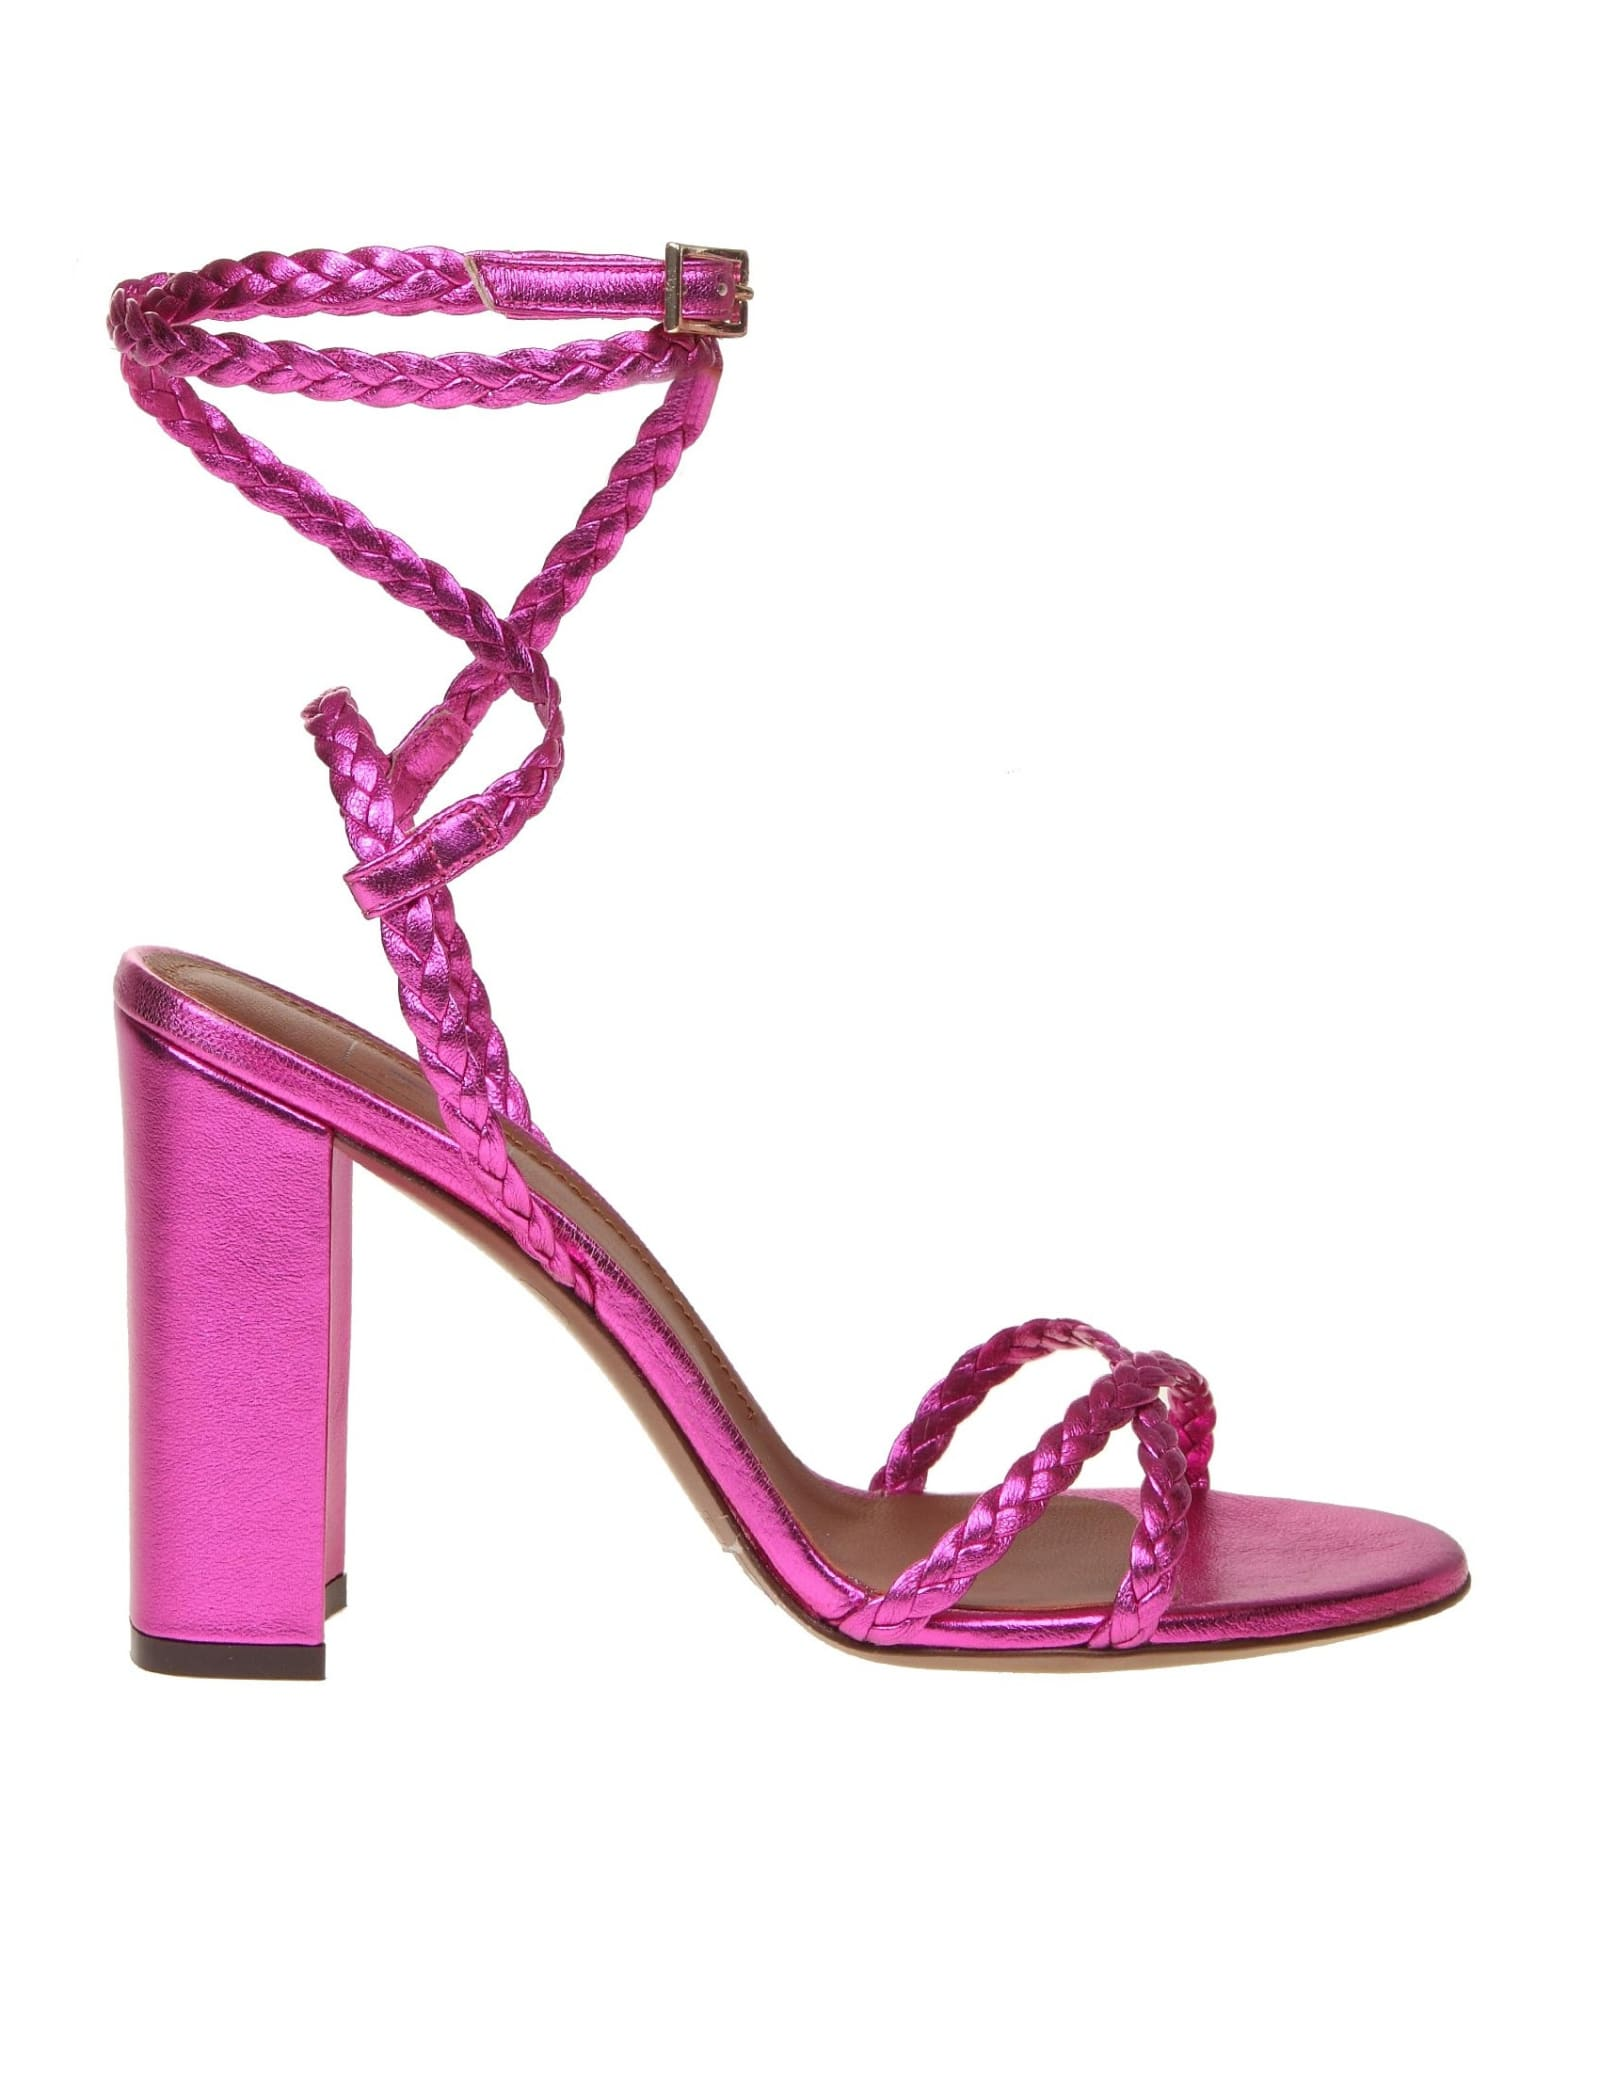 L'autre Chose SANDAL IN LAMINATED LEATHER